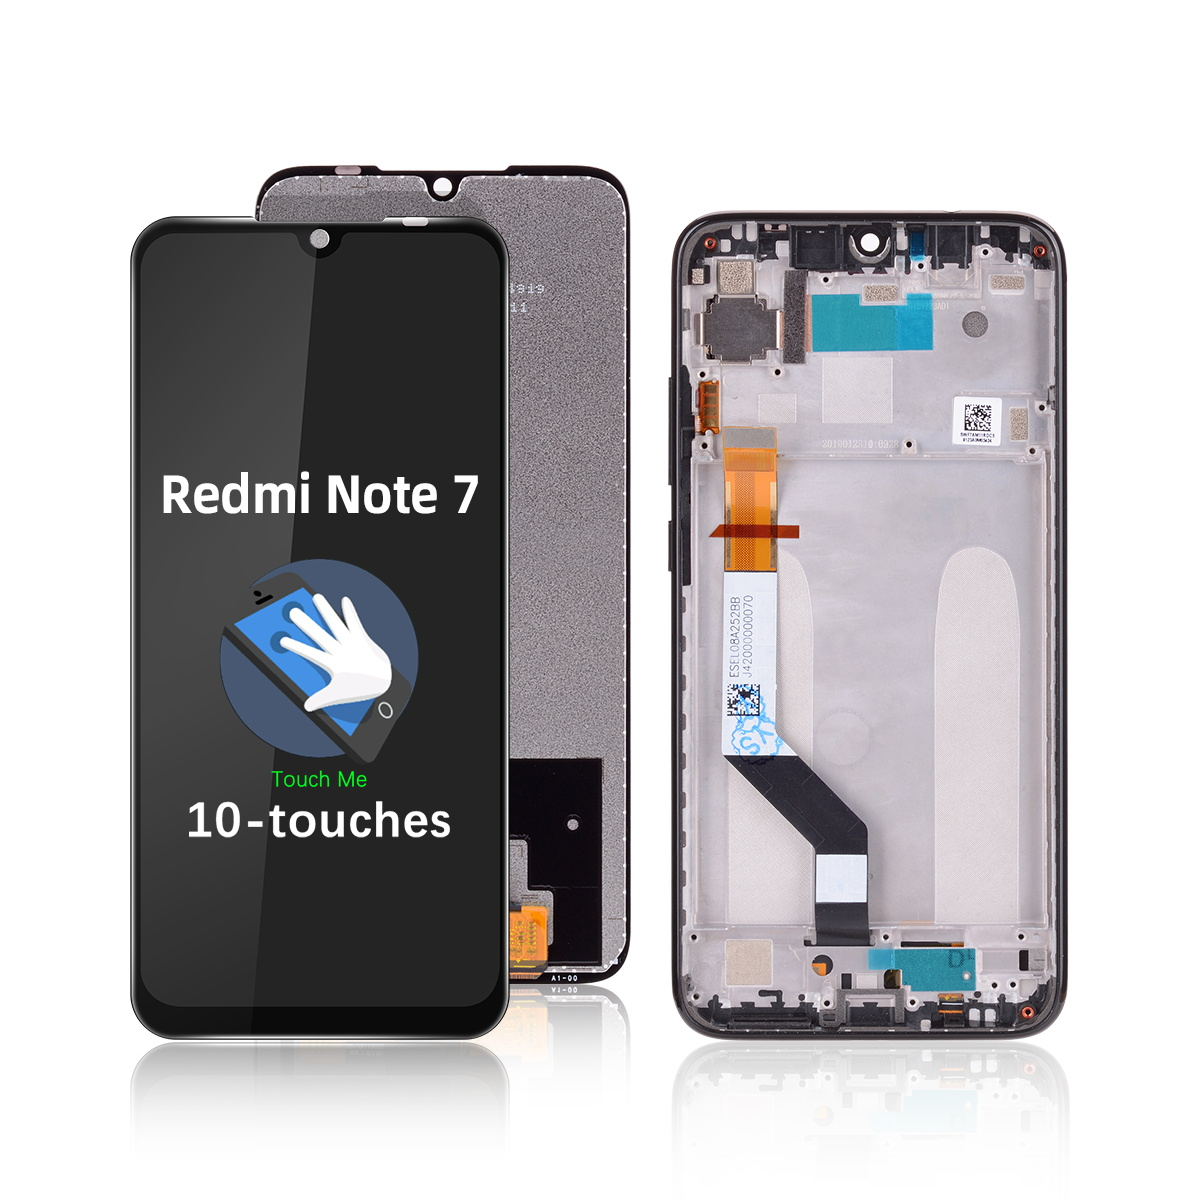 with Frame Replacement Touch Screen Display <font><b>Redmi</b></font> <font><b>Note</b></font> <font><b>7</b></font> <font><b>Pro</b></font> 6.3 inch Replace On undefined image